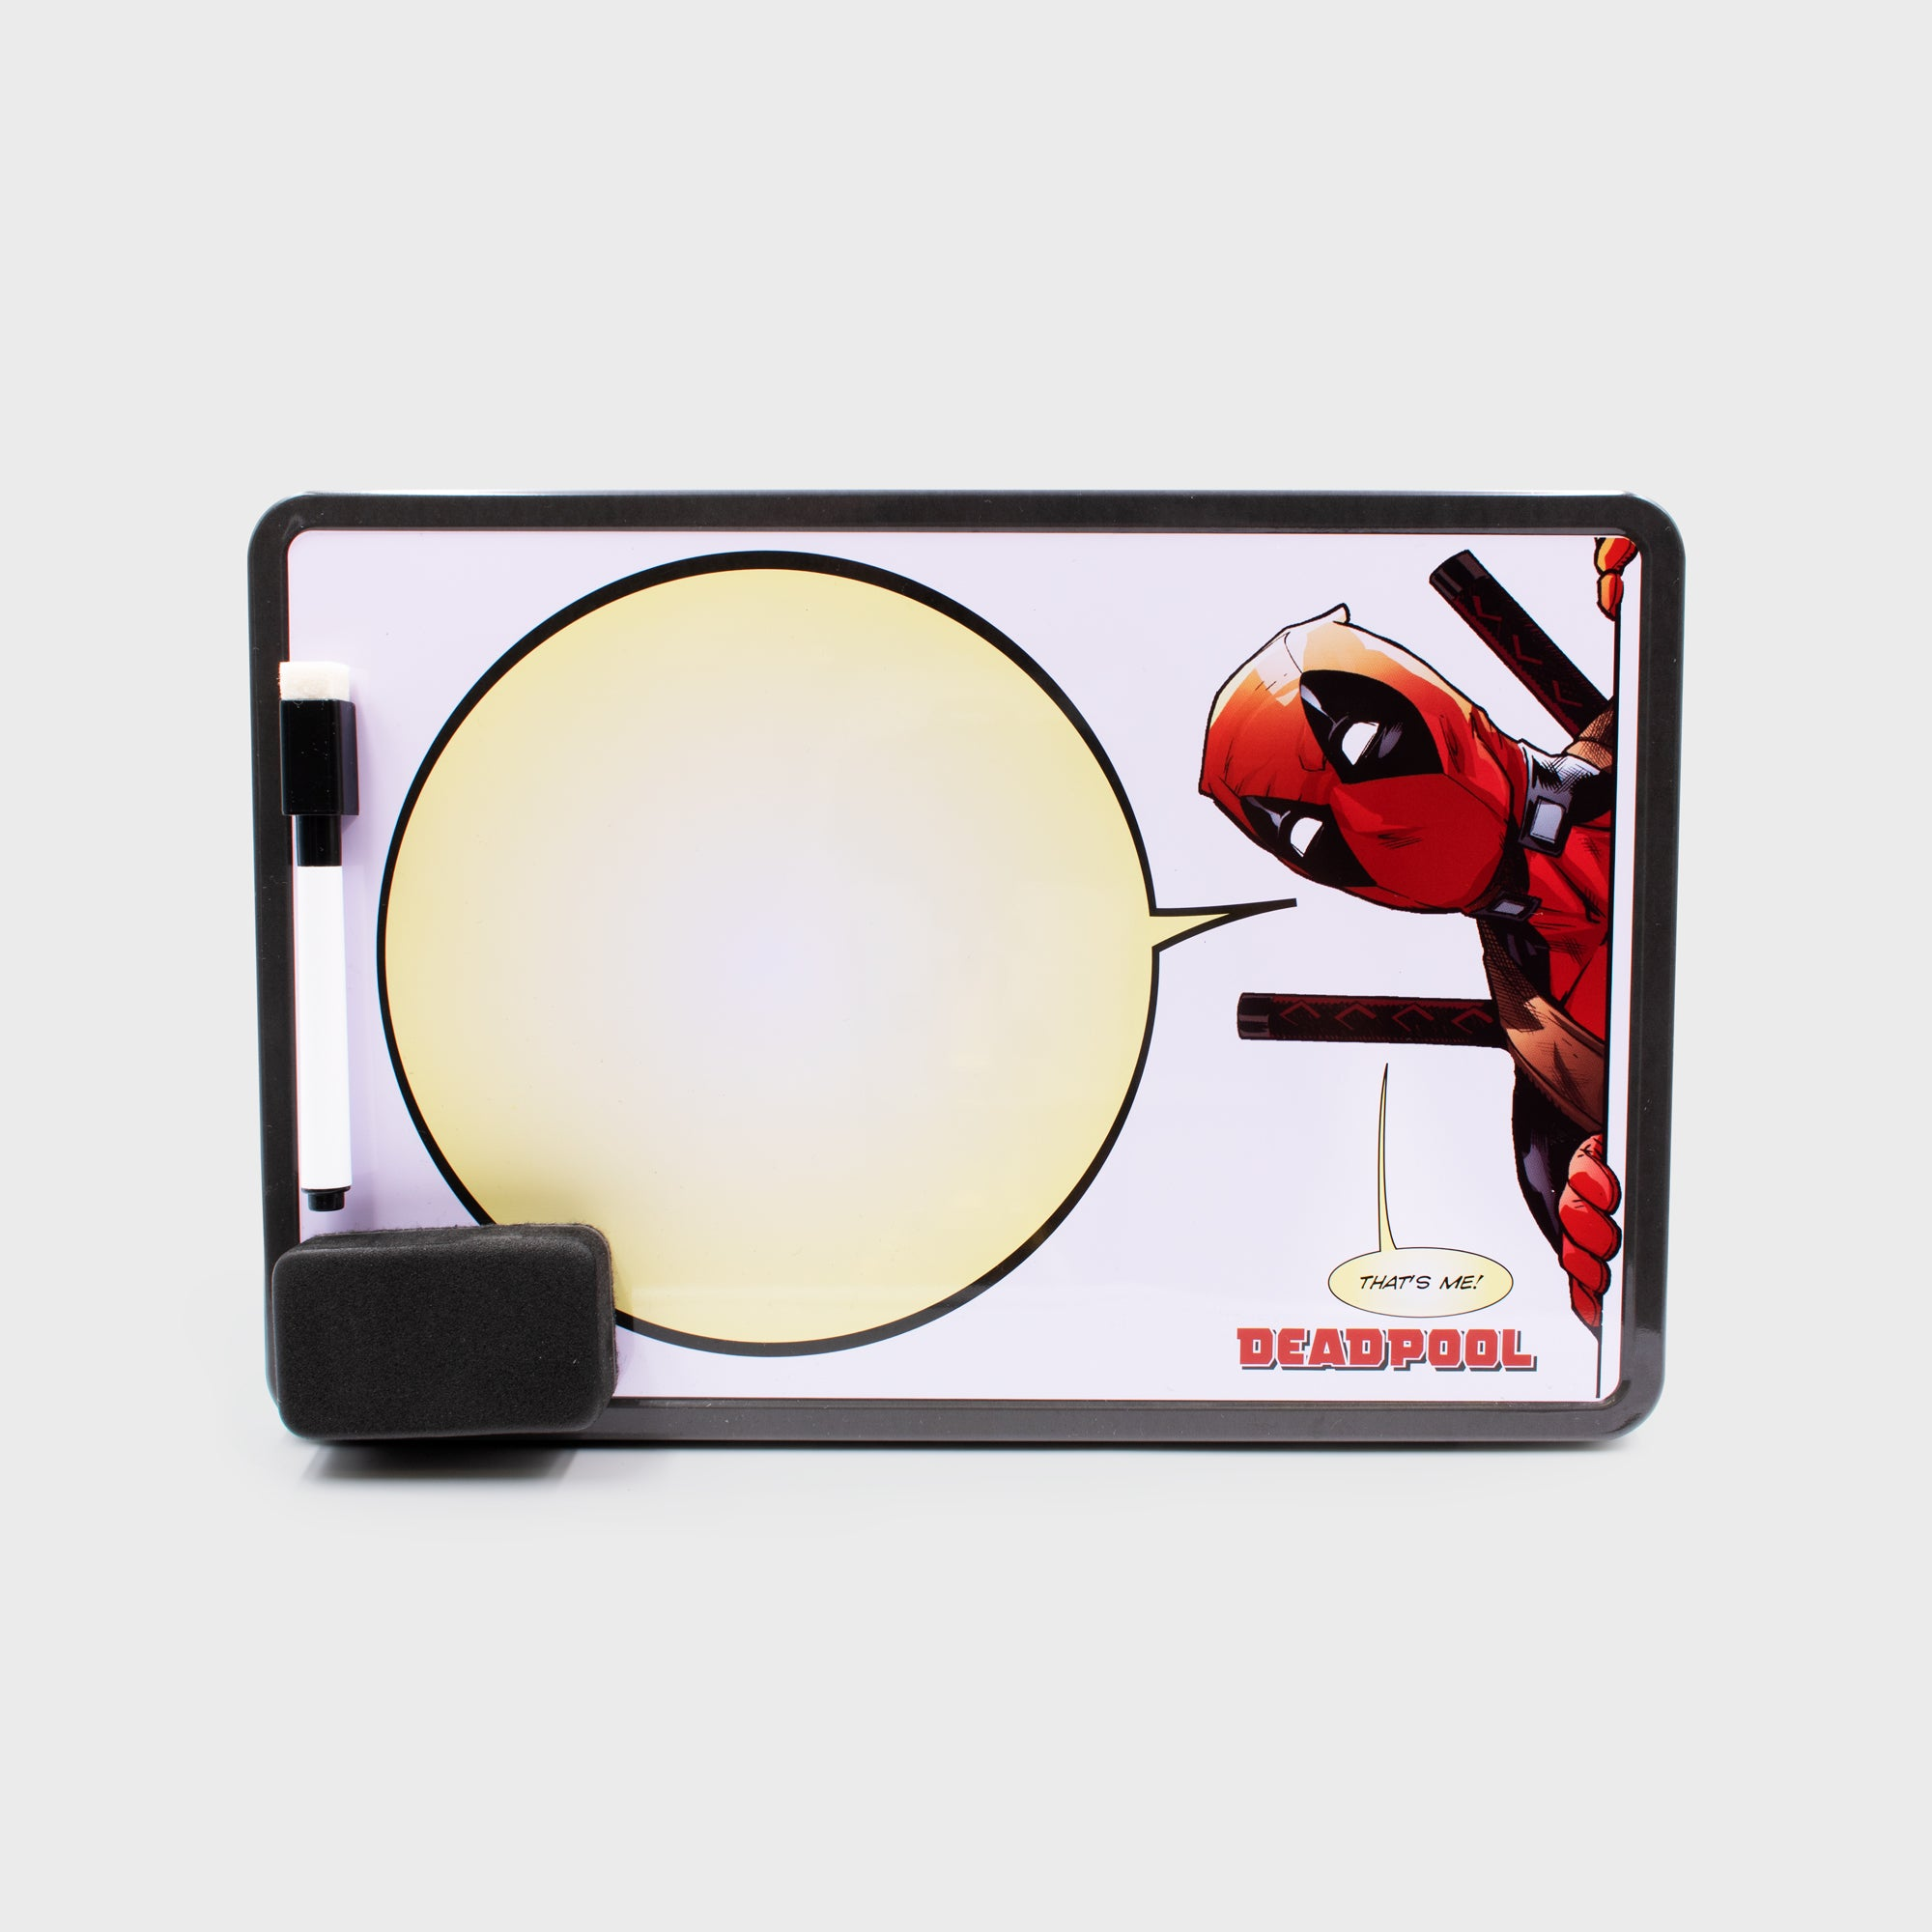 deadpool marvel superhero exclusive collector box home decor collectible dry erase board culturefly